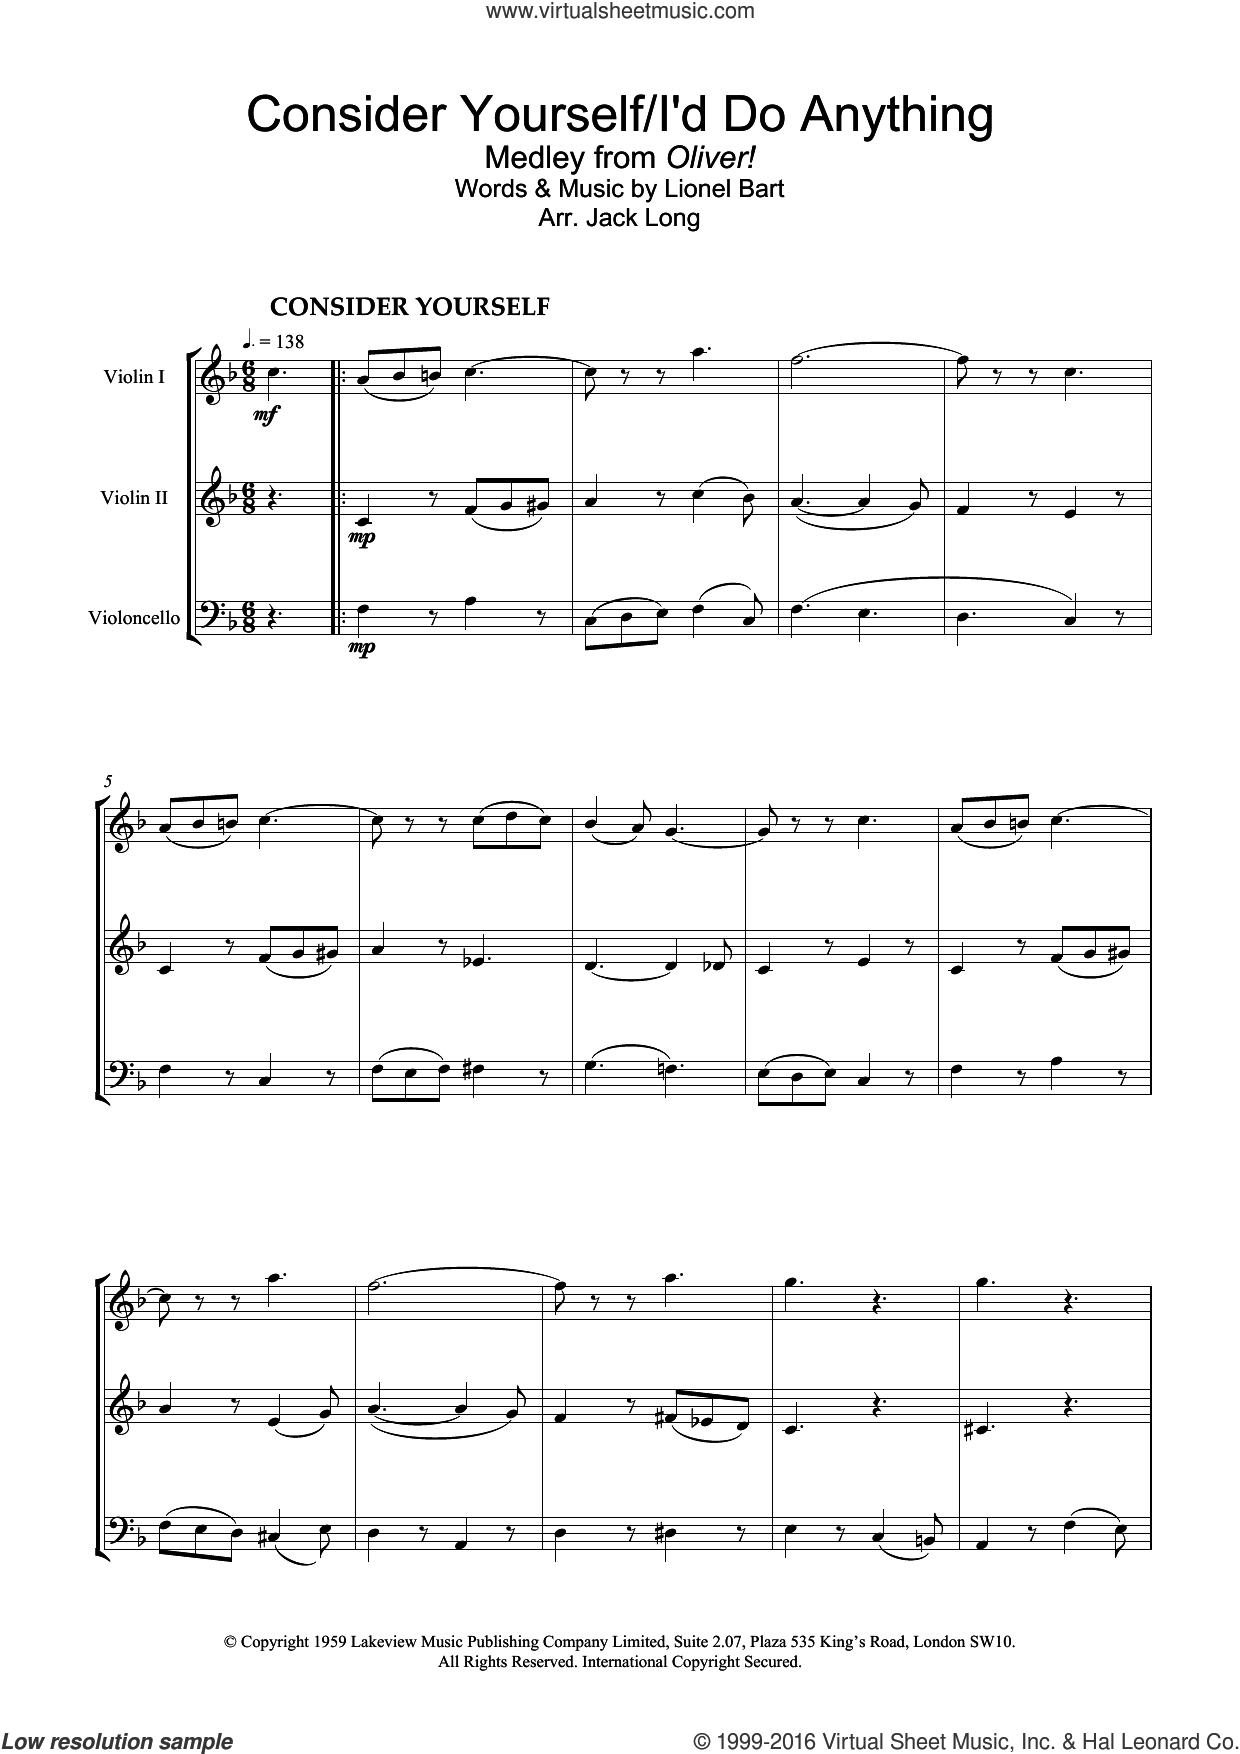 Consider Yourself (from Oliver!) sheet music for violin solo by Lionel Bart, intermediate skill level